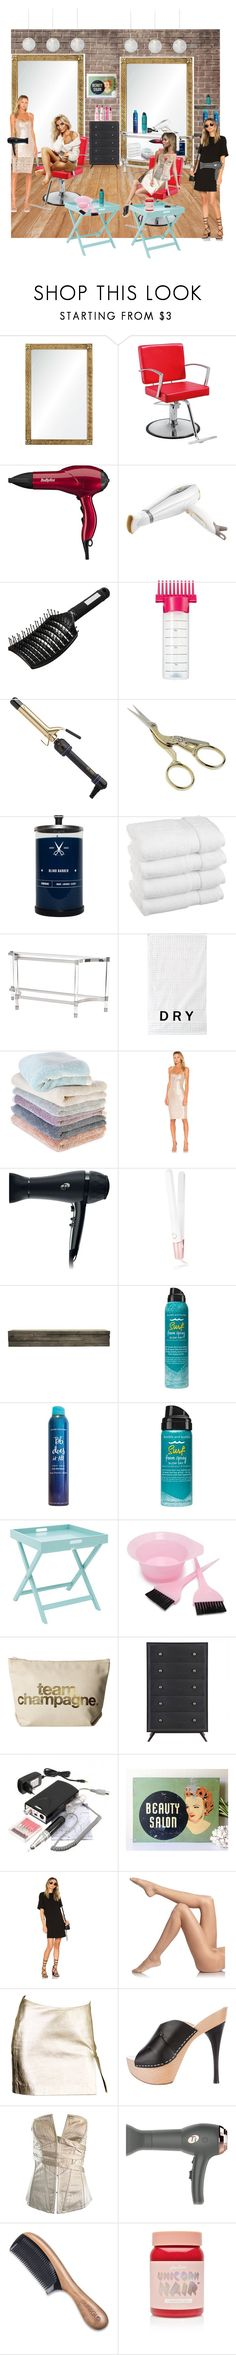 """Hair salon"" by vegas777 ❤ liked on Polyvore featuring beauty, Barclay Butera, BaByliss, Nicky Clarke, Hot Tools, HAY, Blind Barber, Bernhardt, DKNY and Sefte"